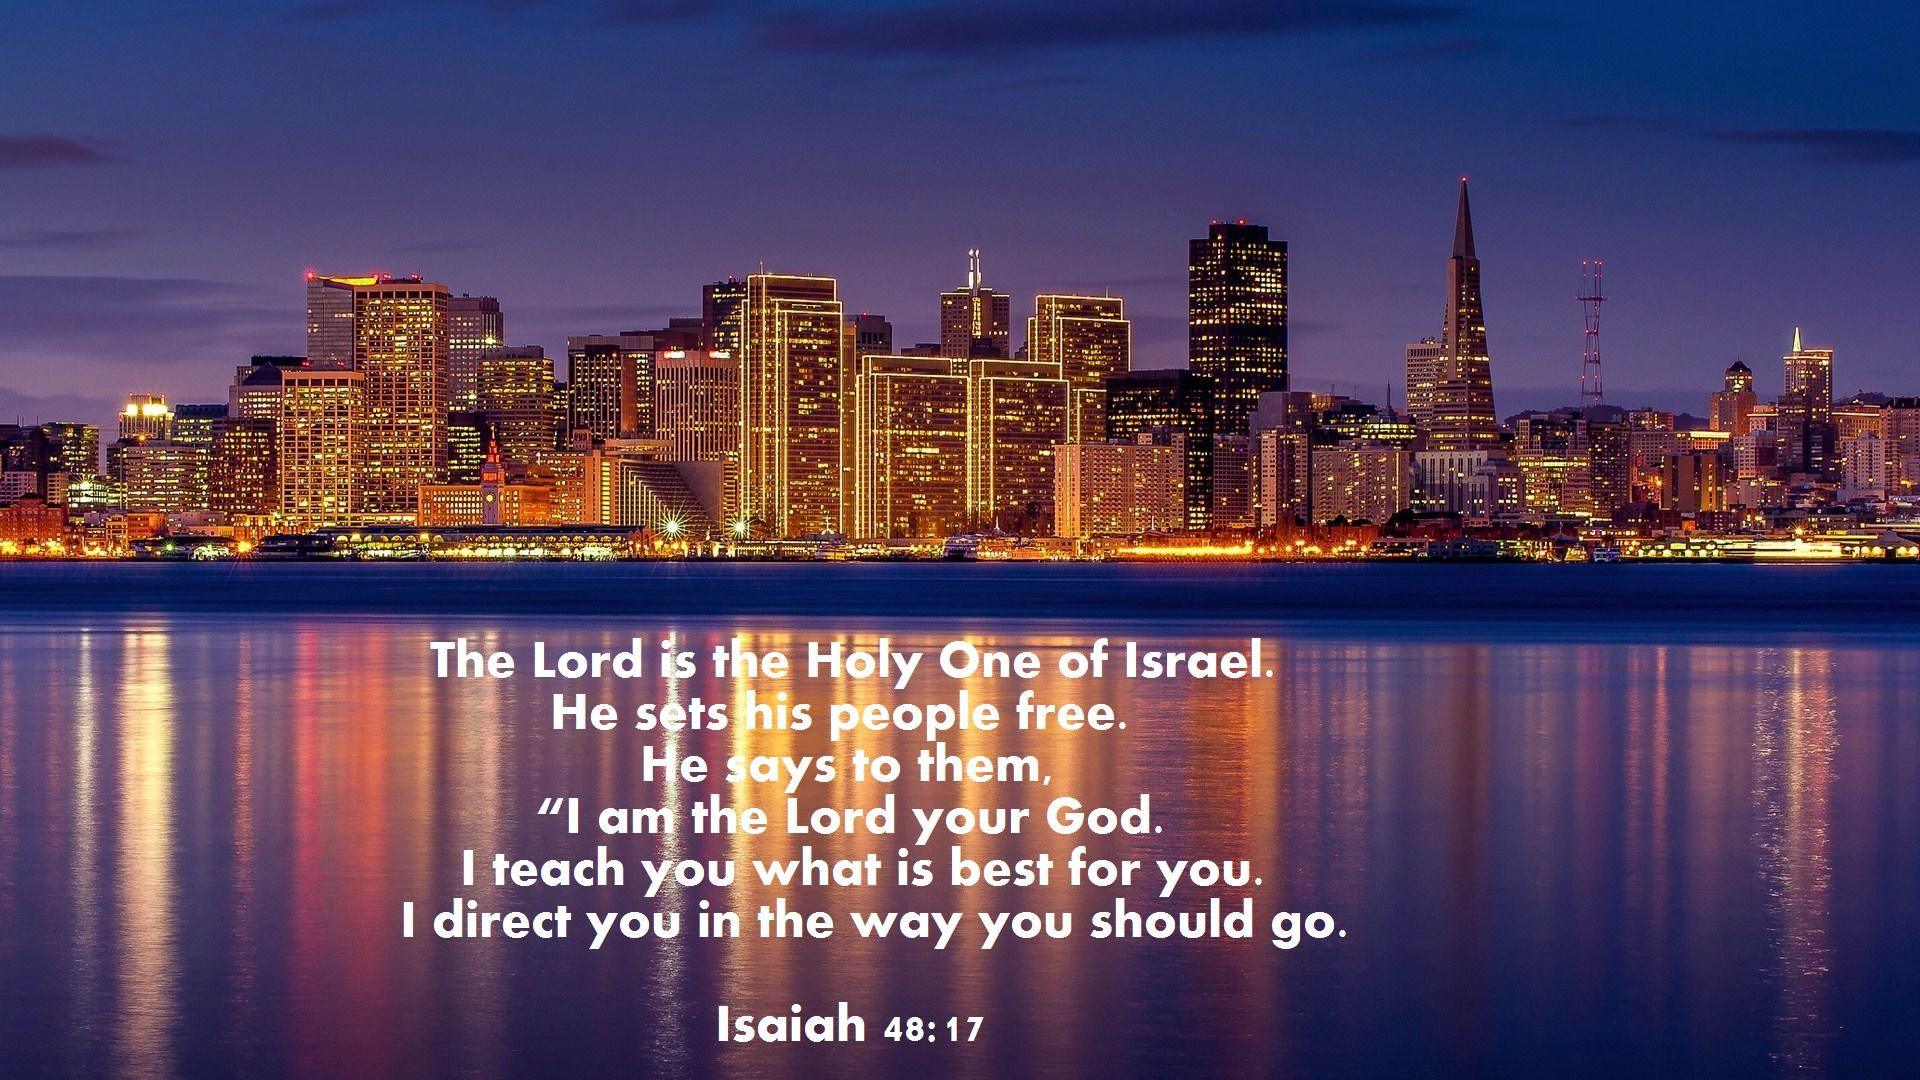 The Lord Is The Holy One Of Israel He Sets His People Free He Says To Them I Am The Lord Your I Teach You What Is Best For You